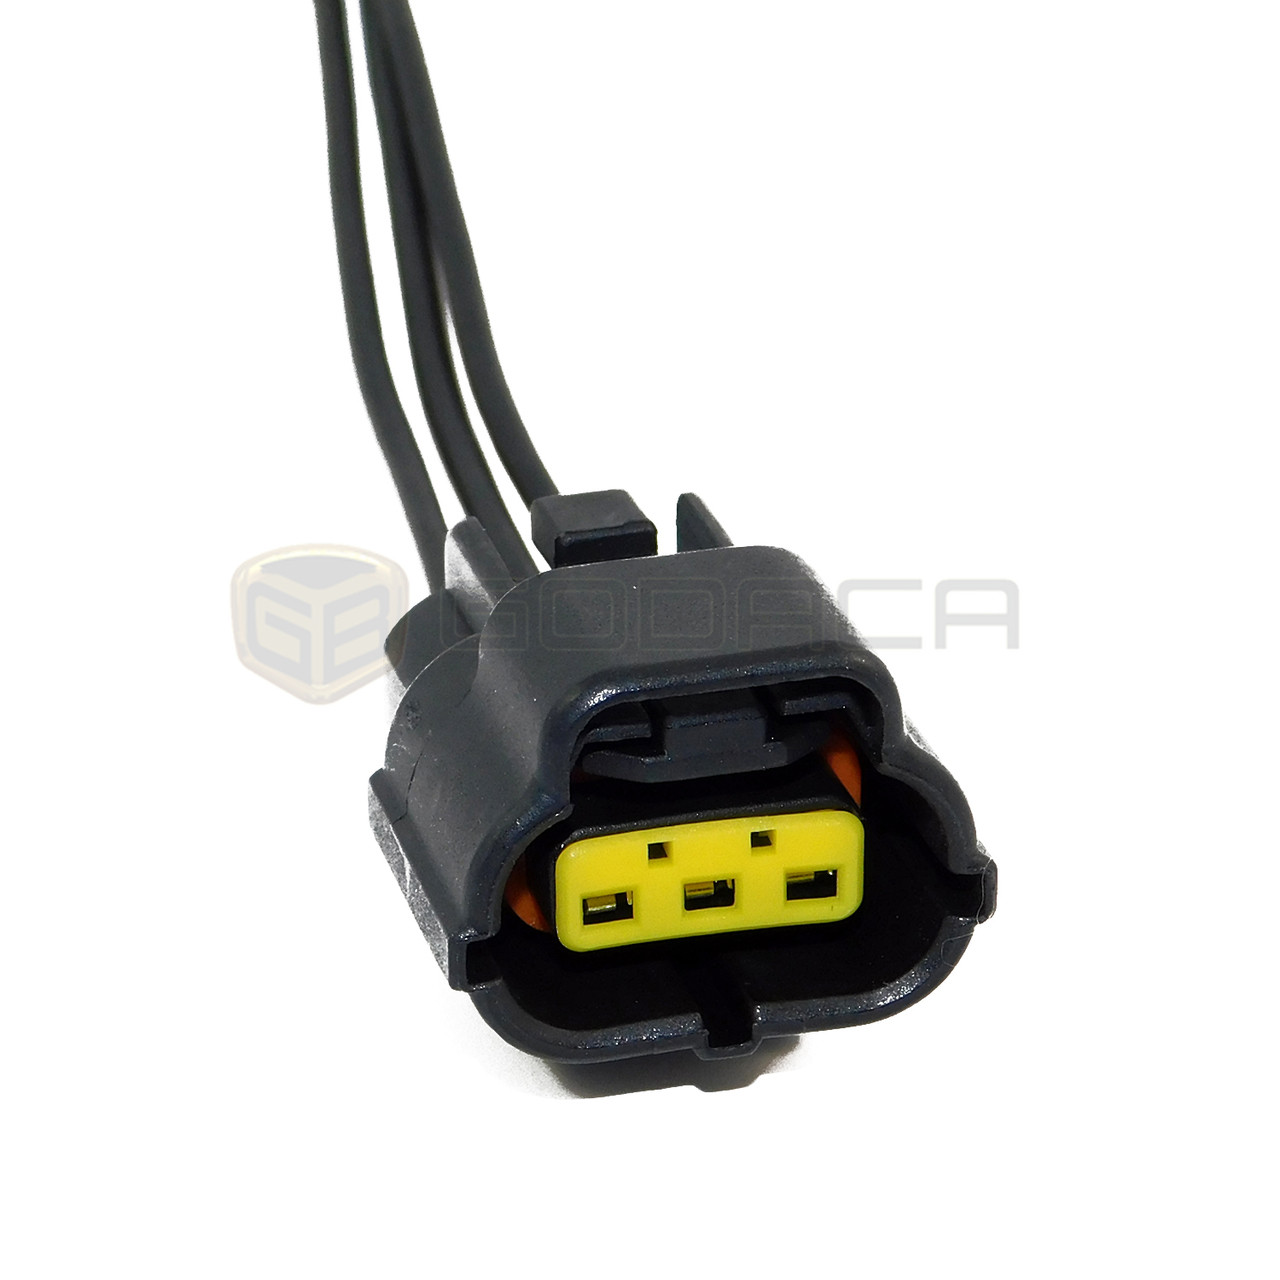 hight resolution of 1 x female connector plug 3 way 3 pin wire denso pigtail harness godaca llc